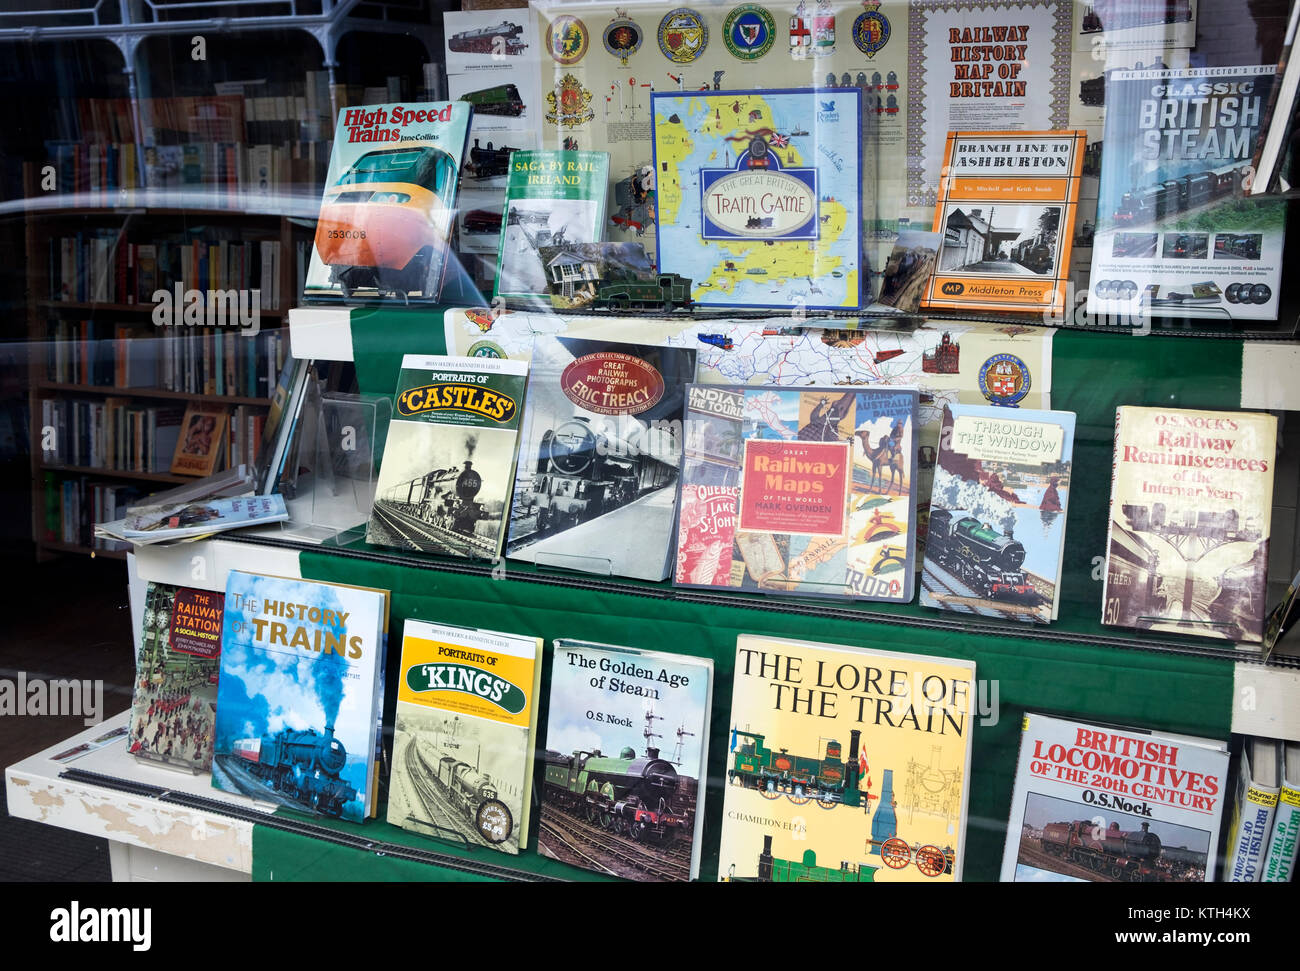 Oxfam secondhand book shop displaying railway themed publications - Stock Image